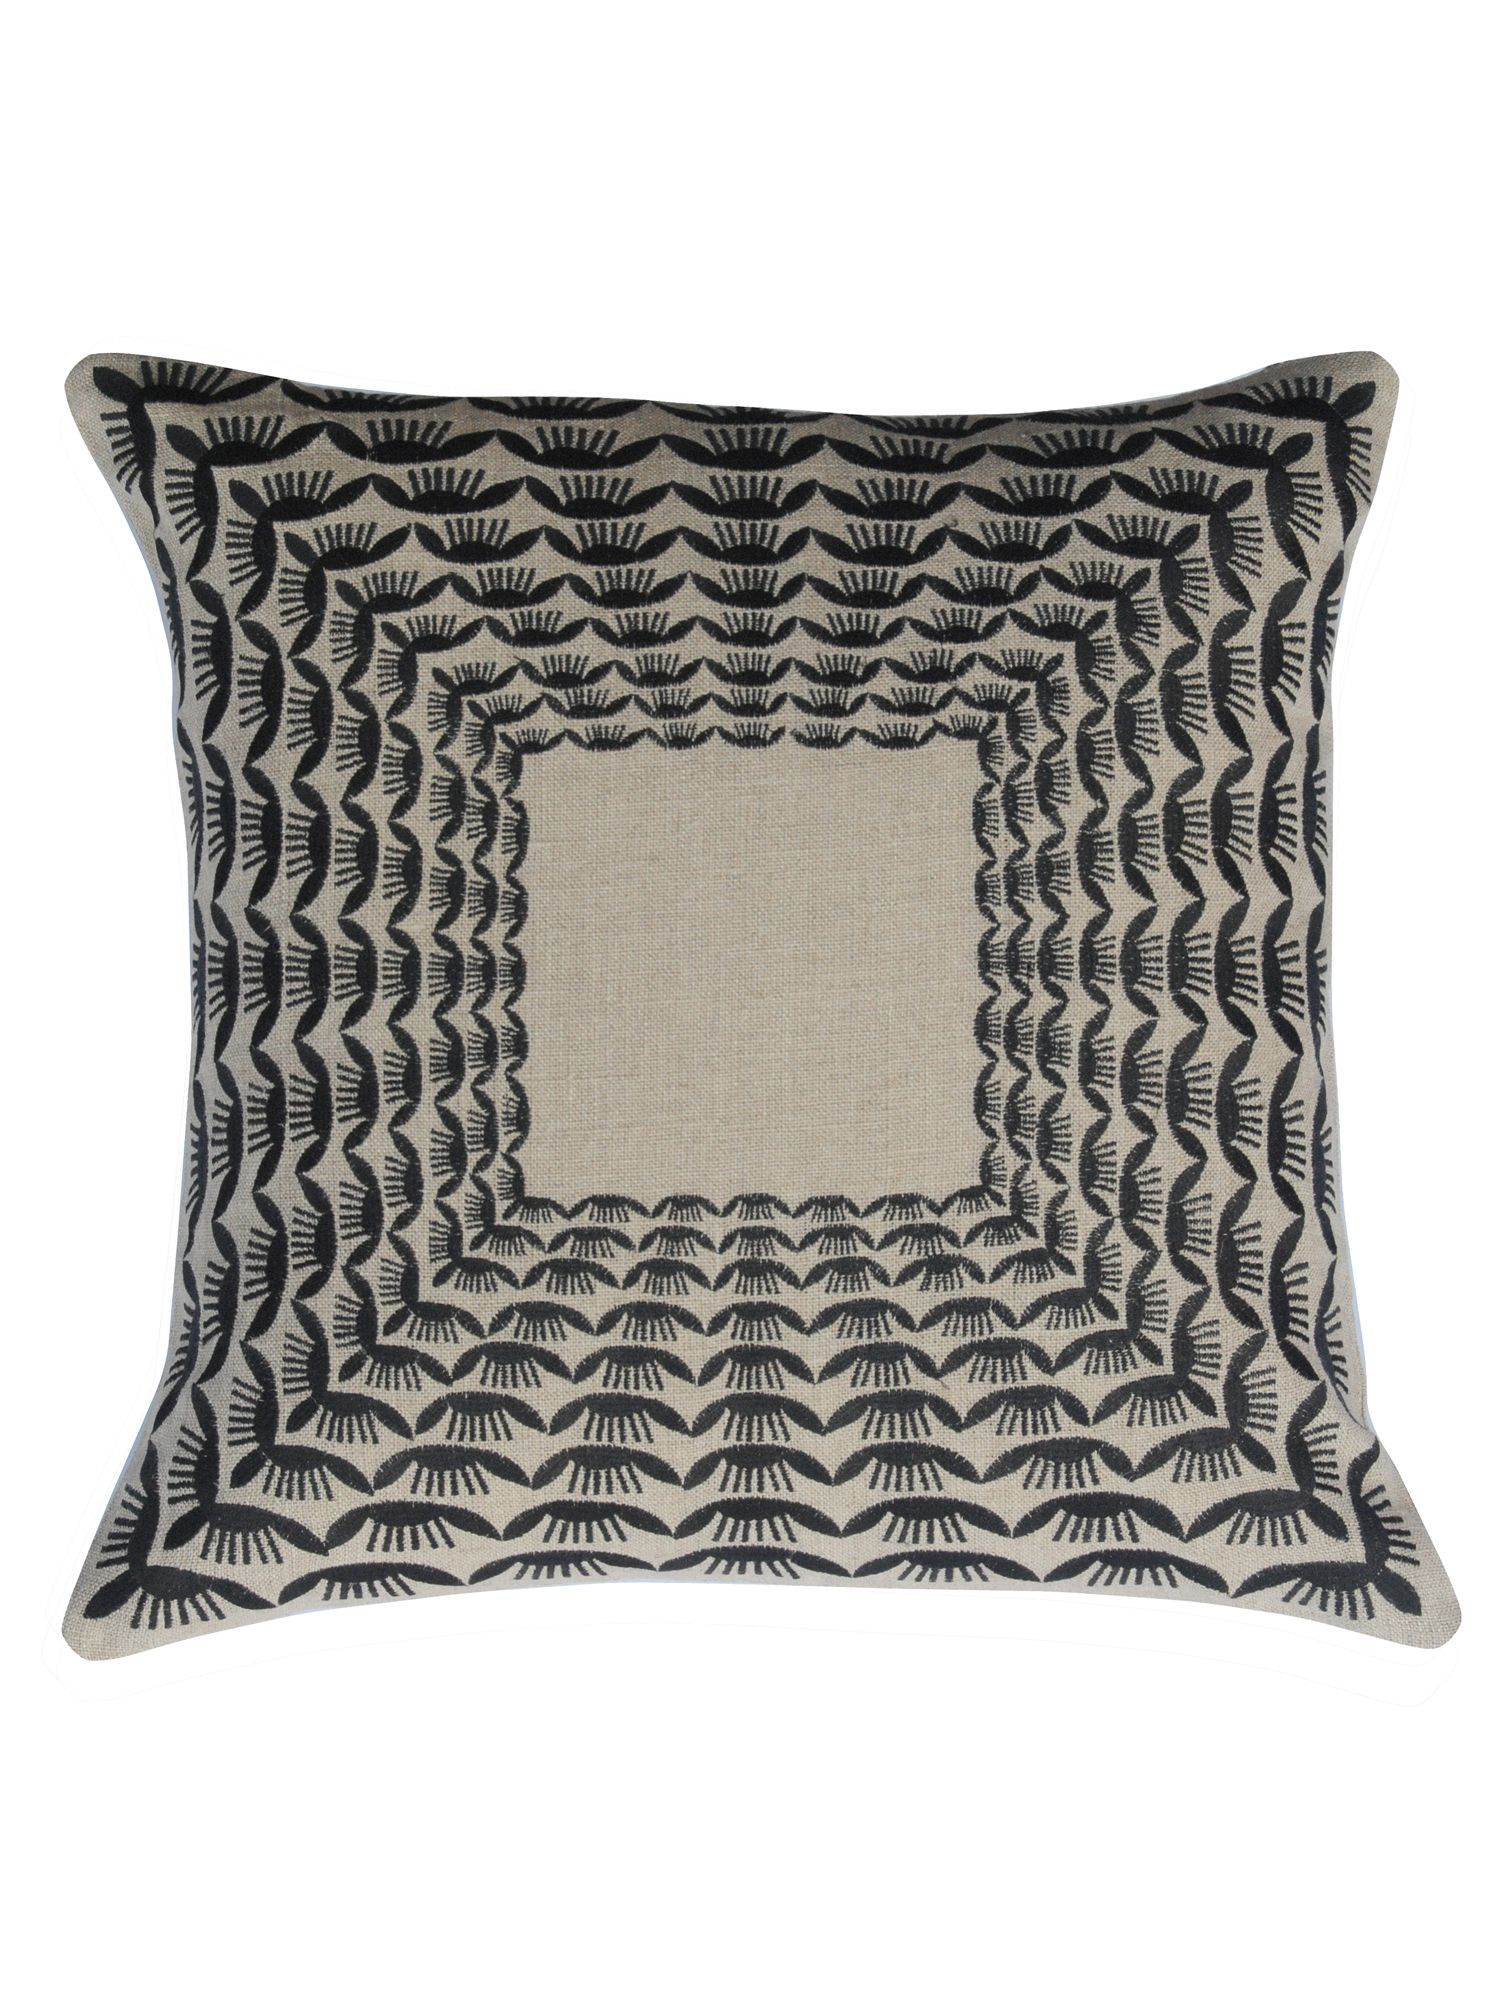 Krakow square cushion natural and black 50cm